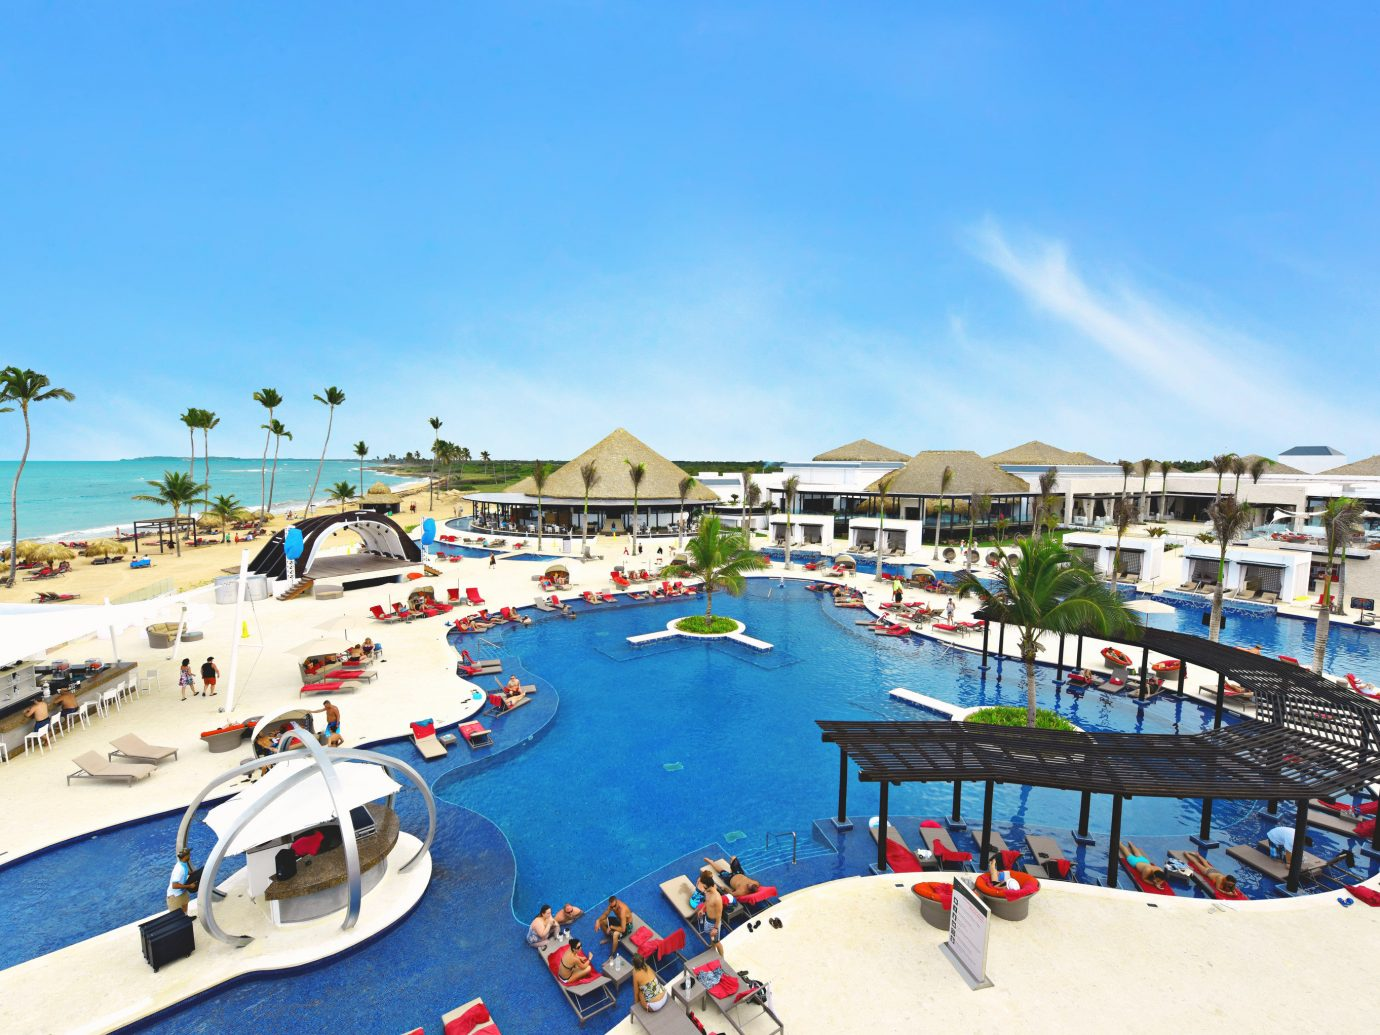 Aerial view of the pool at CHIC by Royalton Resorts